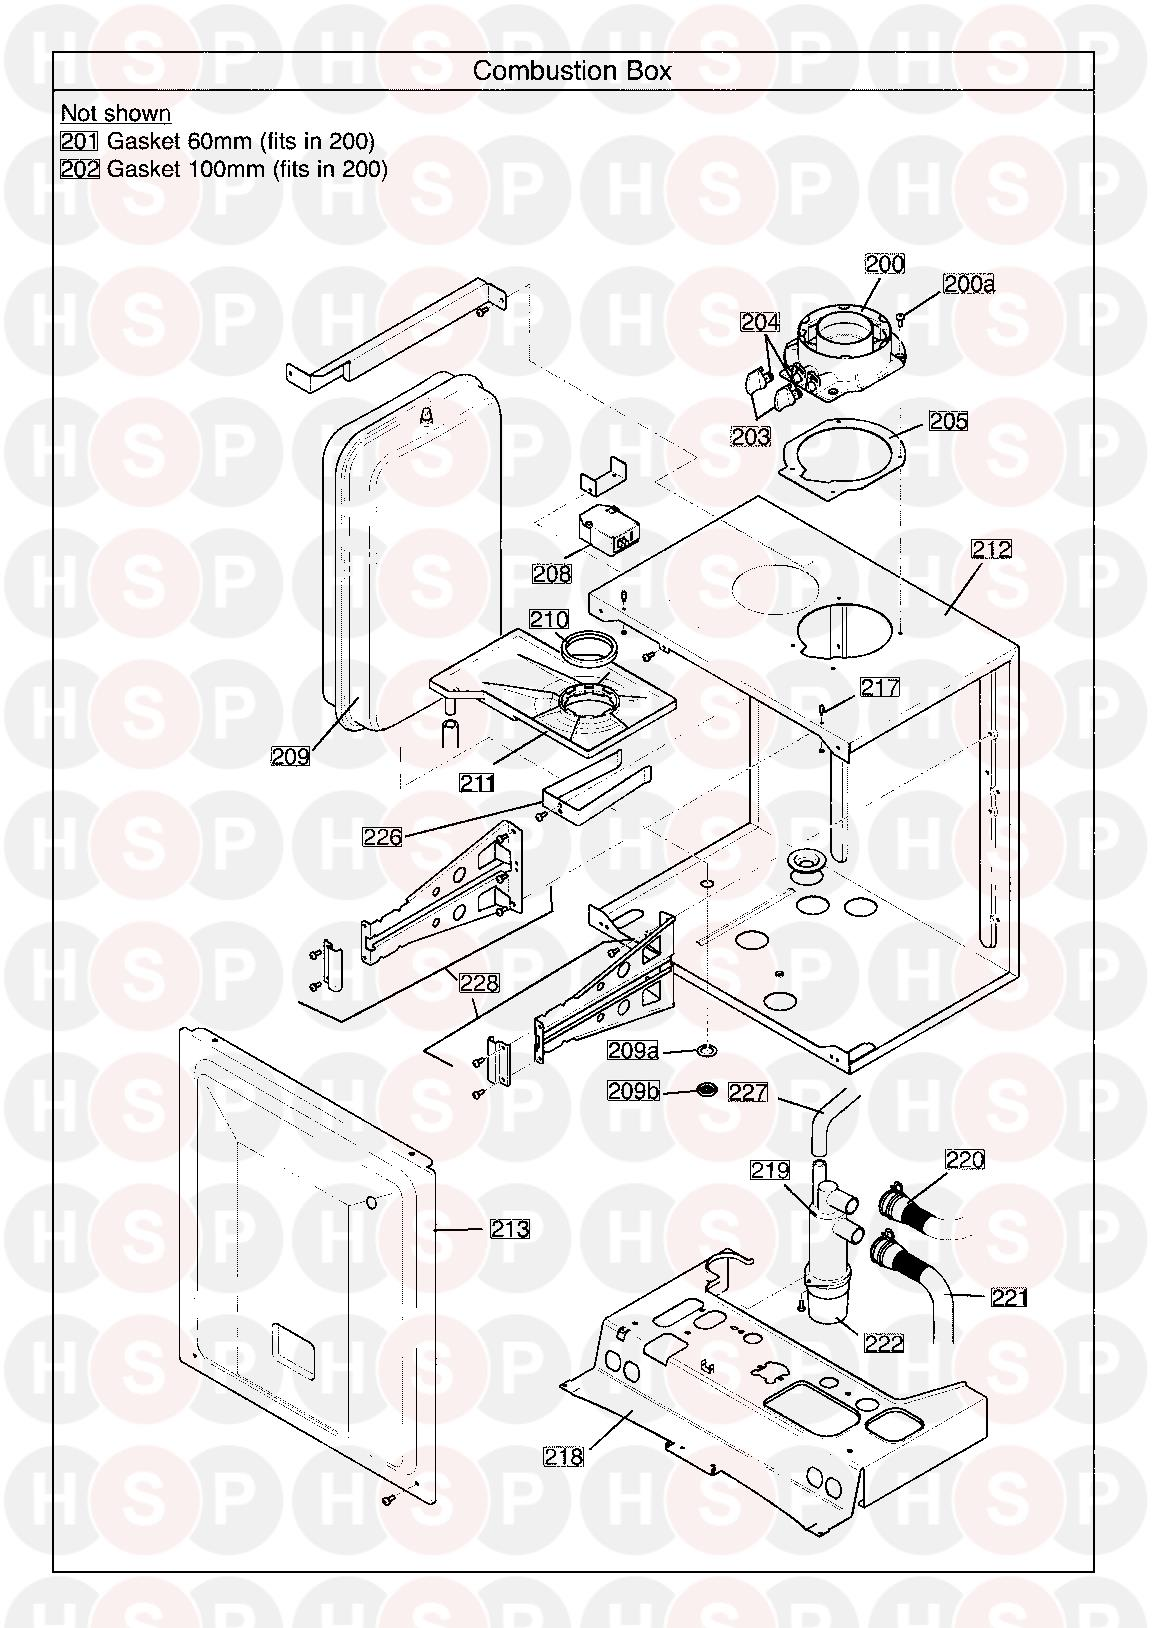 COMBUSTION BOX diagram for Baxi 40 COMBI Erp (SERIAL NO. ENDING IN AC ISSUE 2)